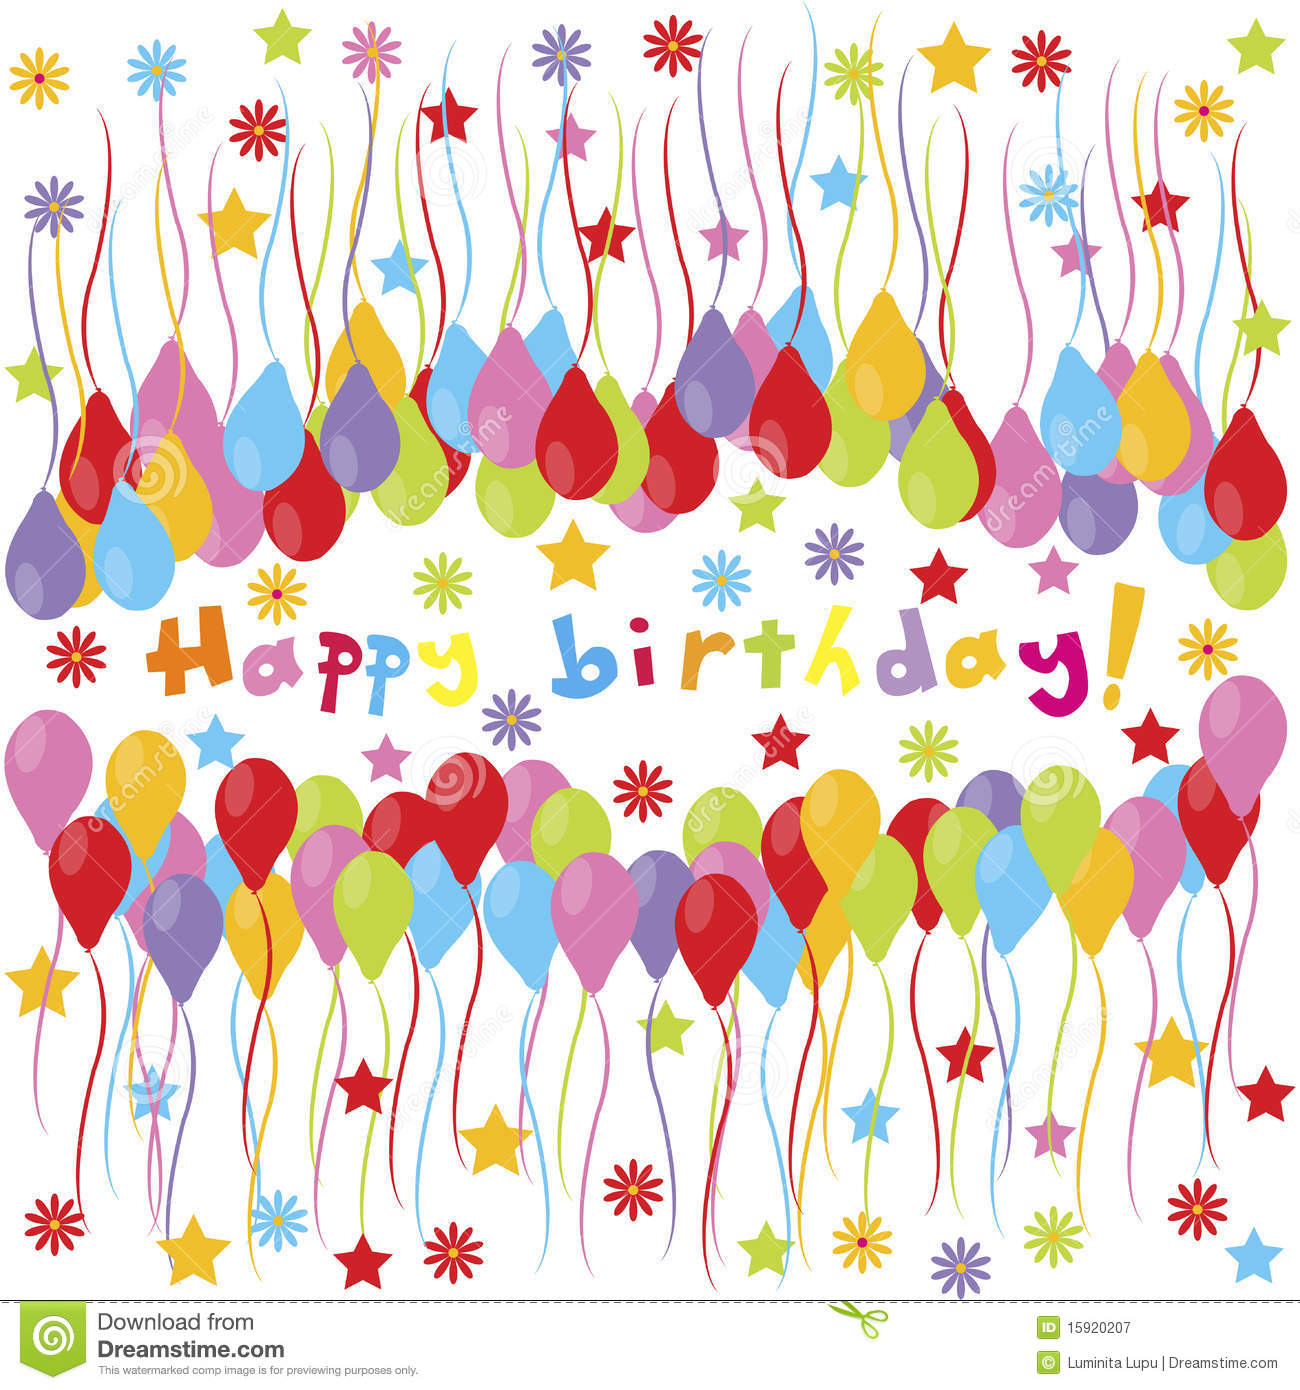 Free animated clipart birthday picture black and white Royalty free animated clipart - ClipartFest picture black and white